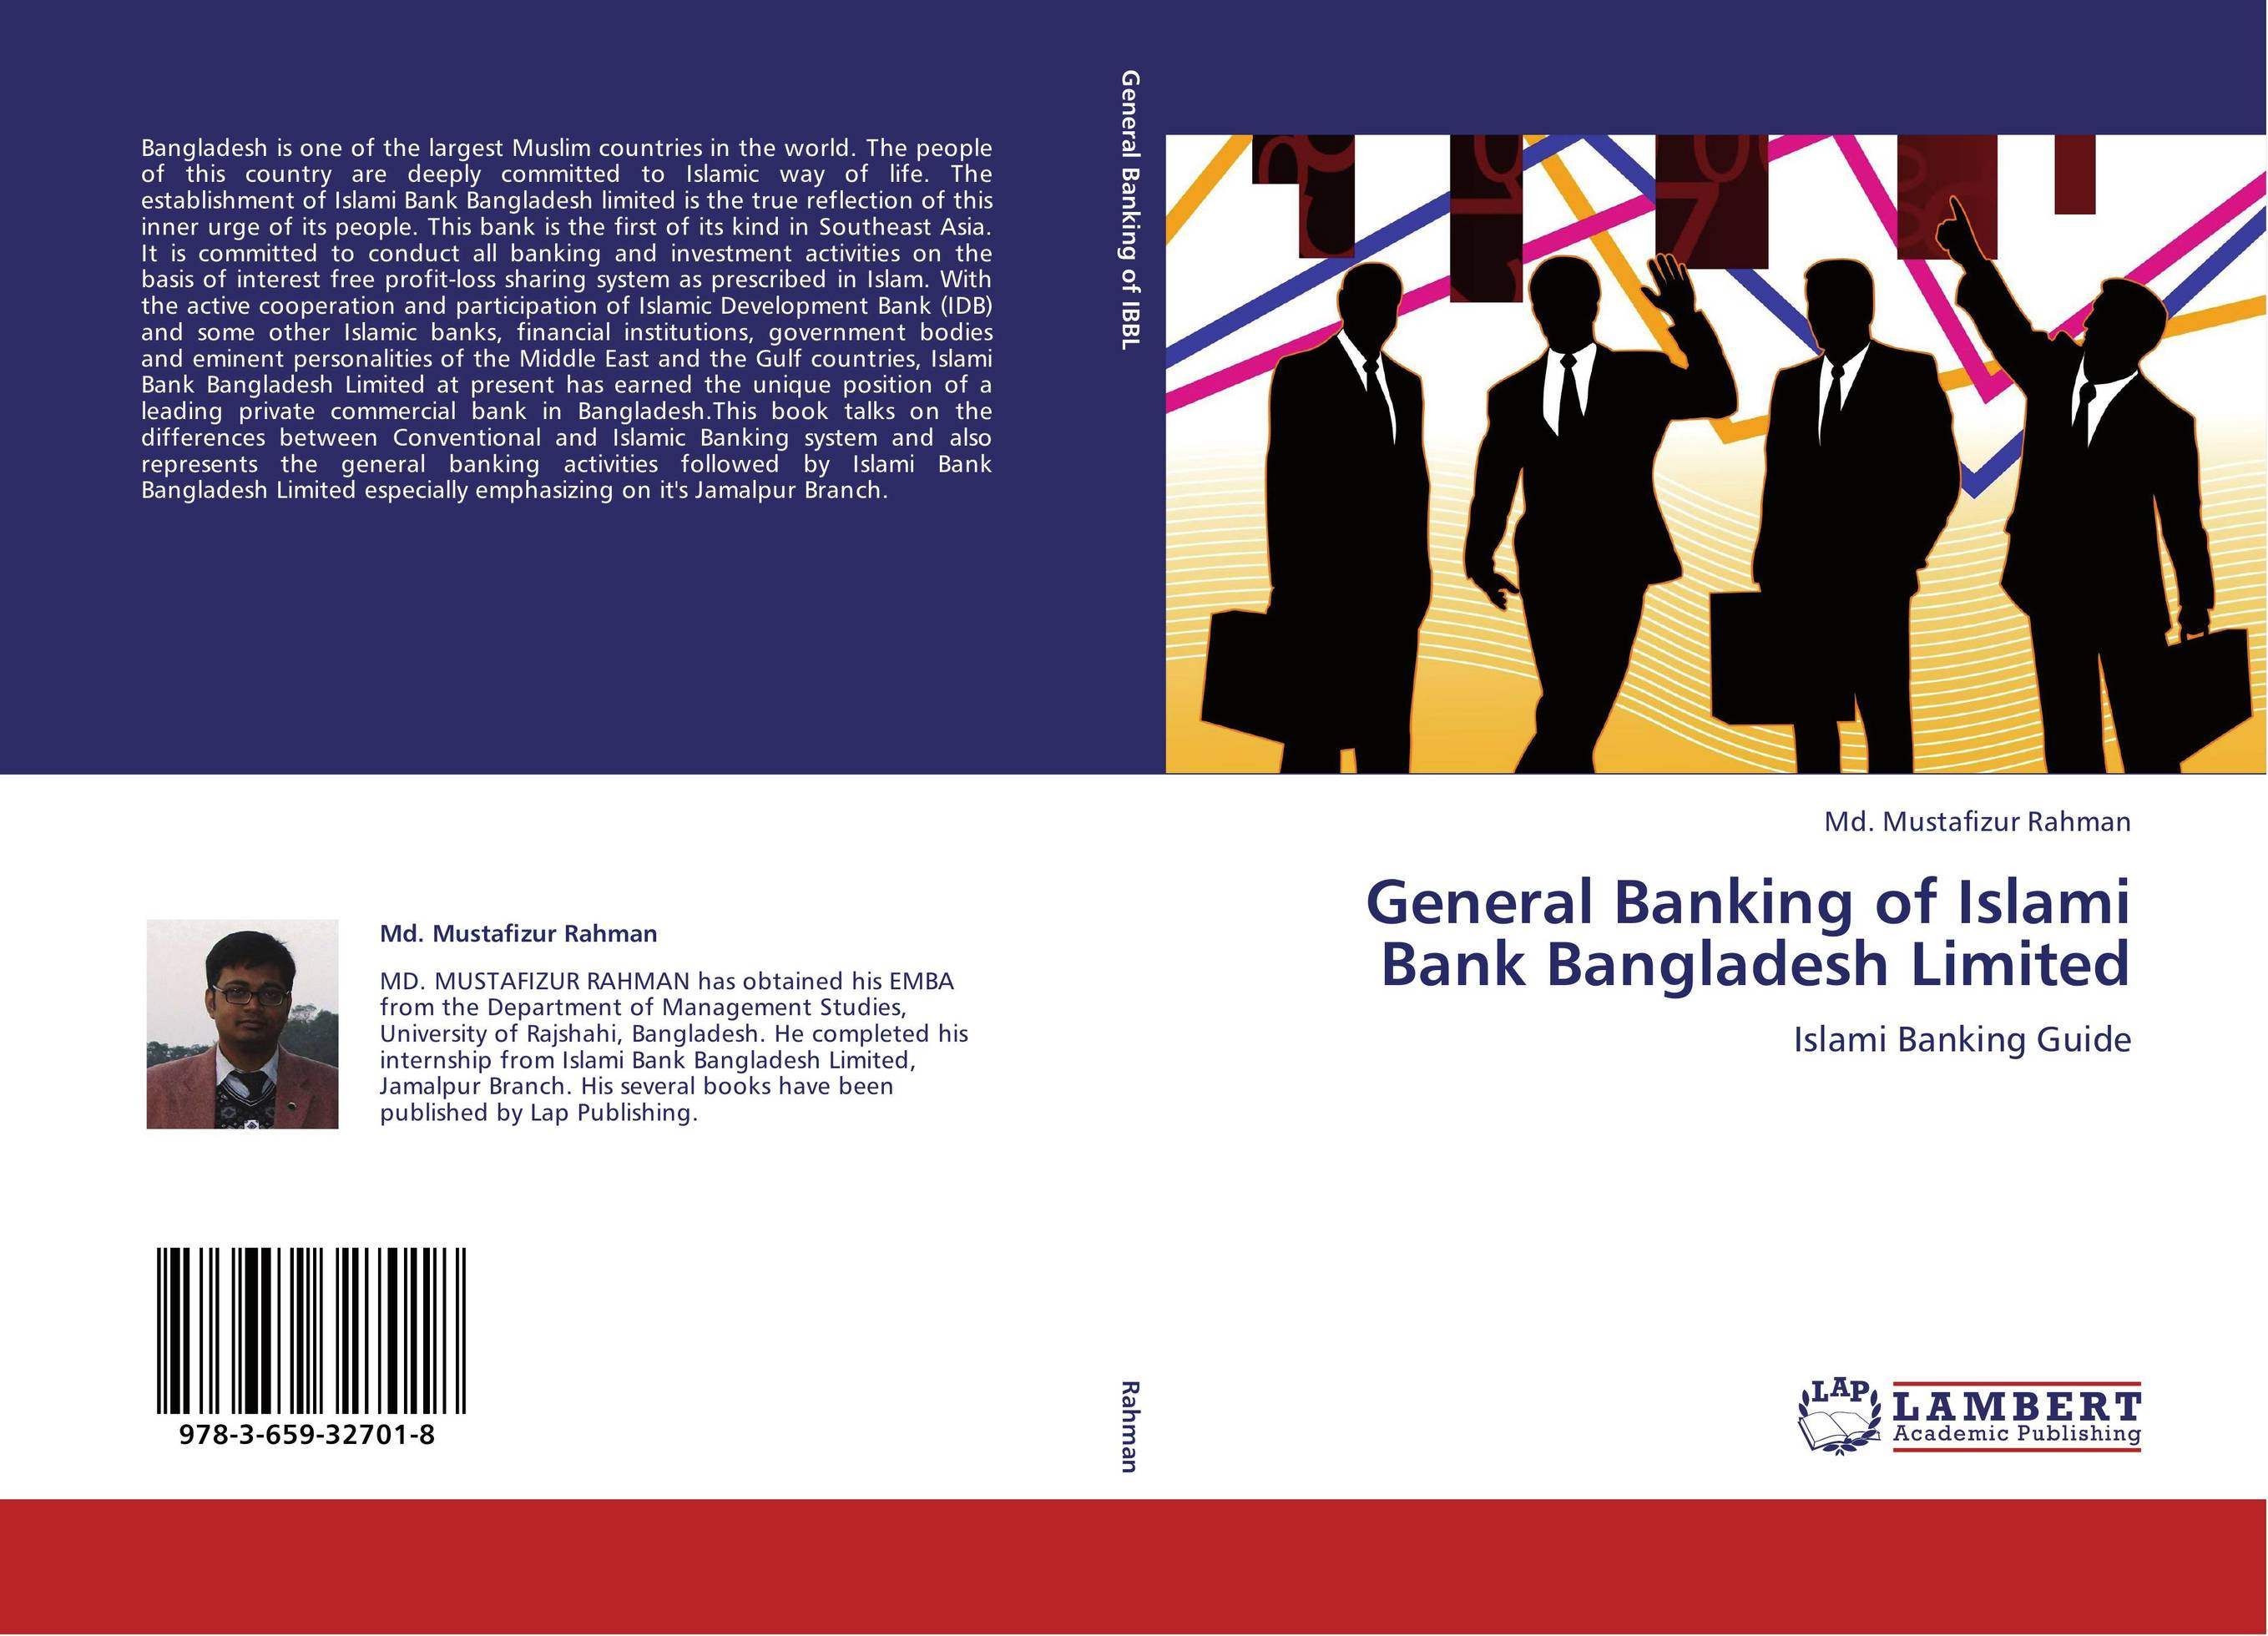 development of islamic banking and finance Dr sami suwailem is a senior consultant at the islamic development bank (idb) he is a prominent expert in the field of islamic finance an experienced researcher, an economist, and an author for a handful of specialized books related to islamic finance that are considered as an authority in its field.